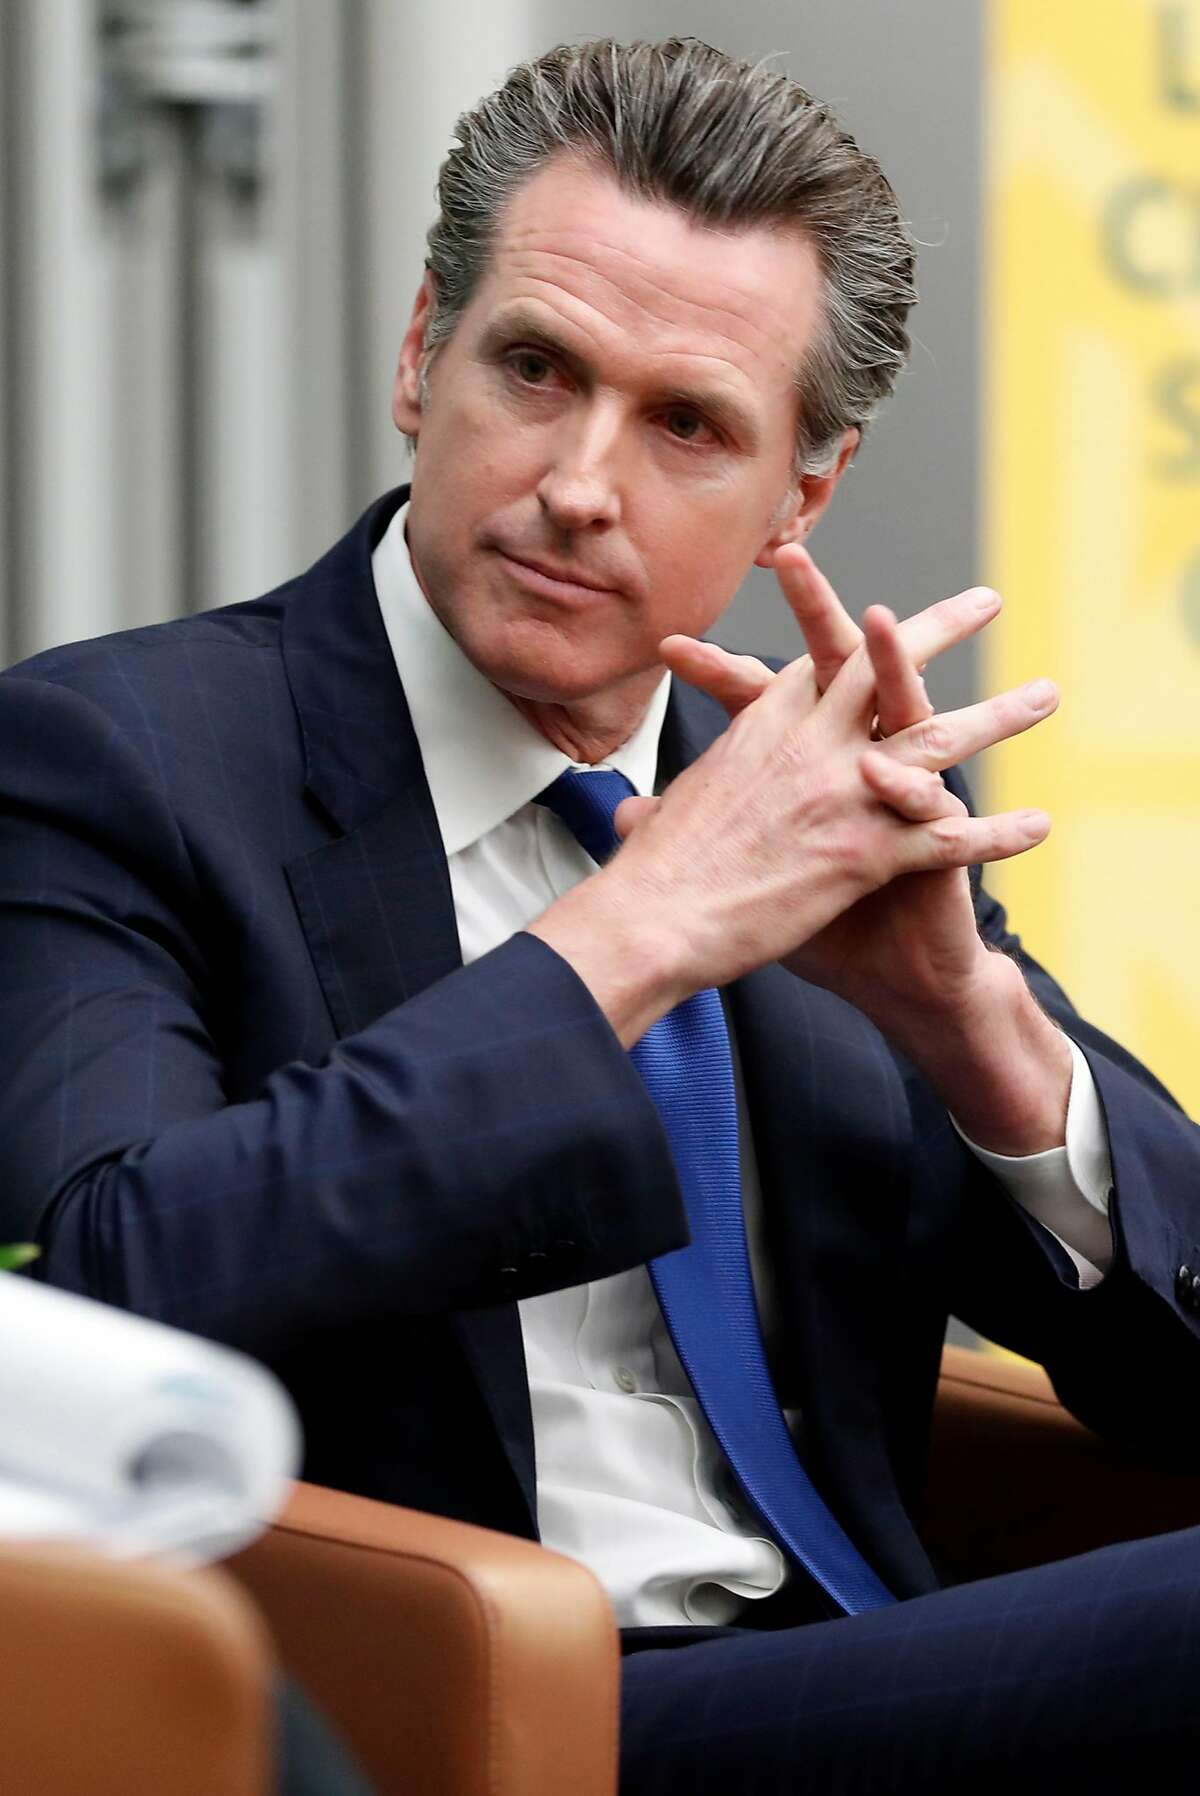 California Lt. Governor and Gubernatorial candidate Gavin Newsom is interviewed by Politco's Carla Marinucci at University of San Francisco in San Francisco, Calif., on Monday, February 5, 2018.